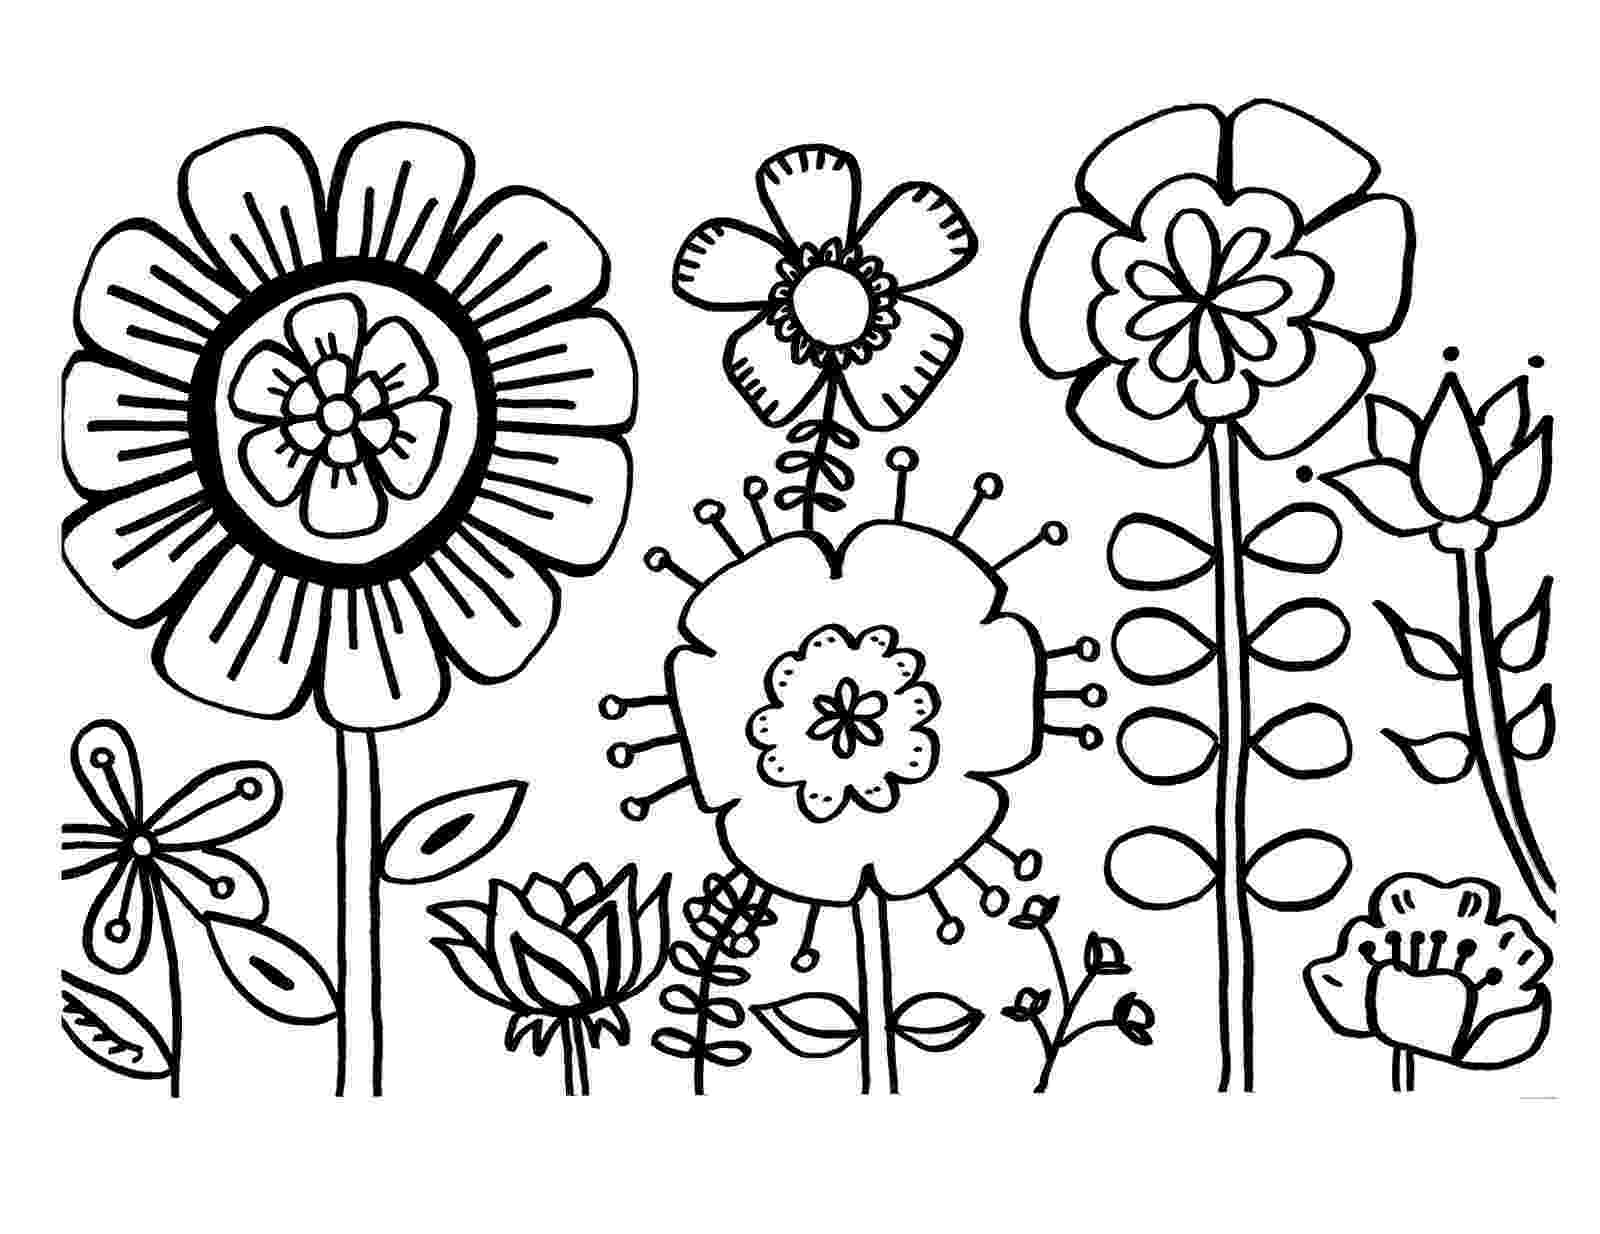 flower pictures to print and color flowers pictures elegant free flower coloring pages for kids and color flower to print pictures